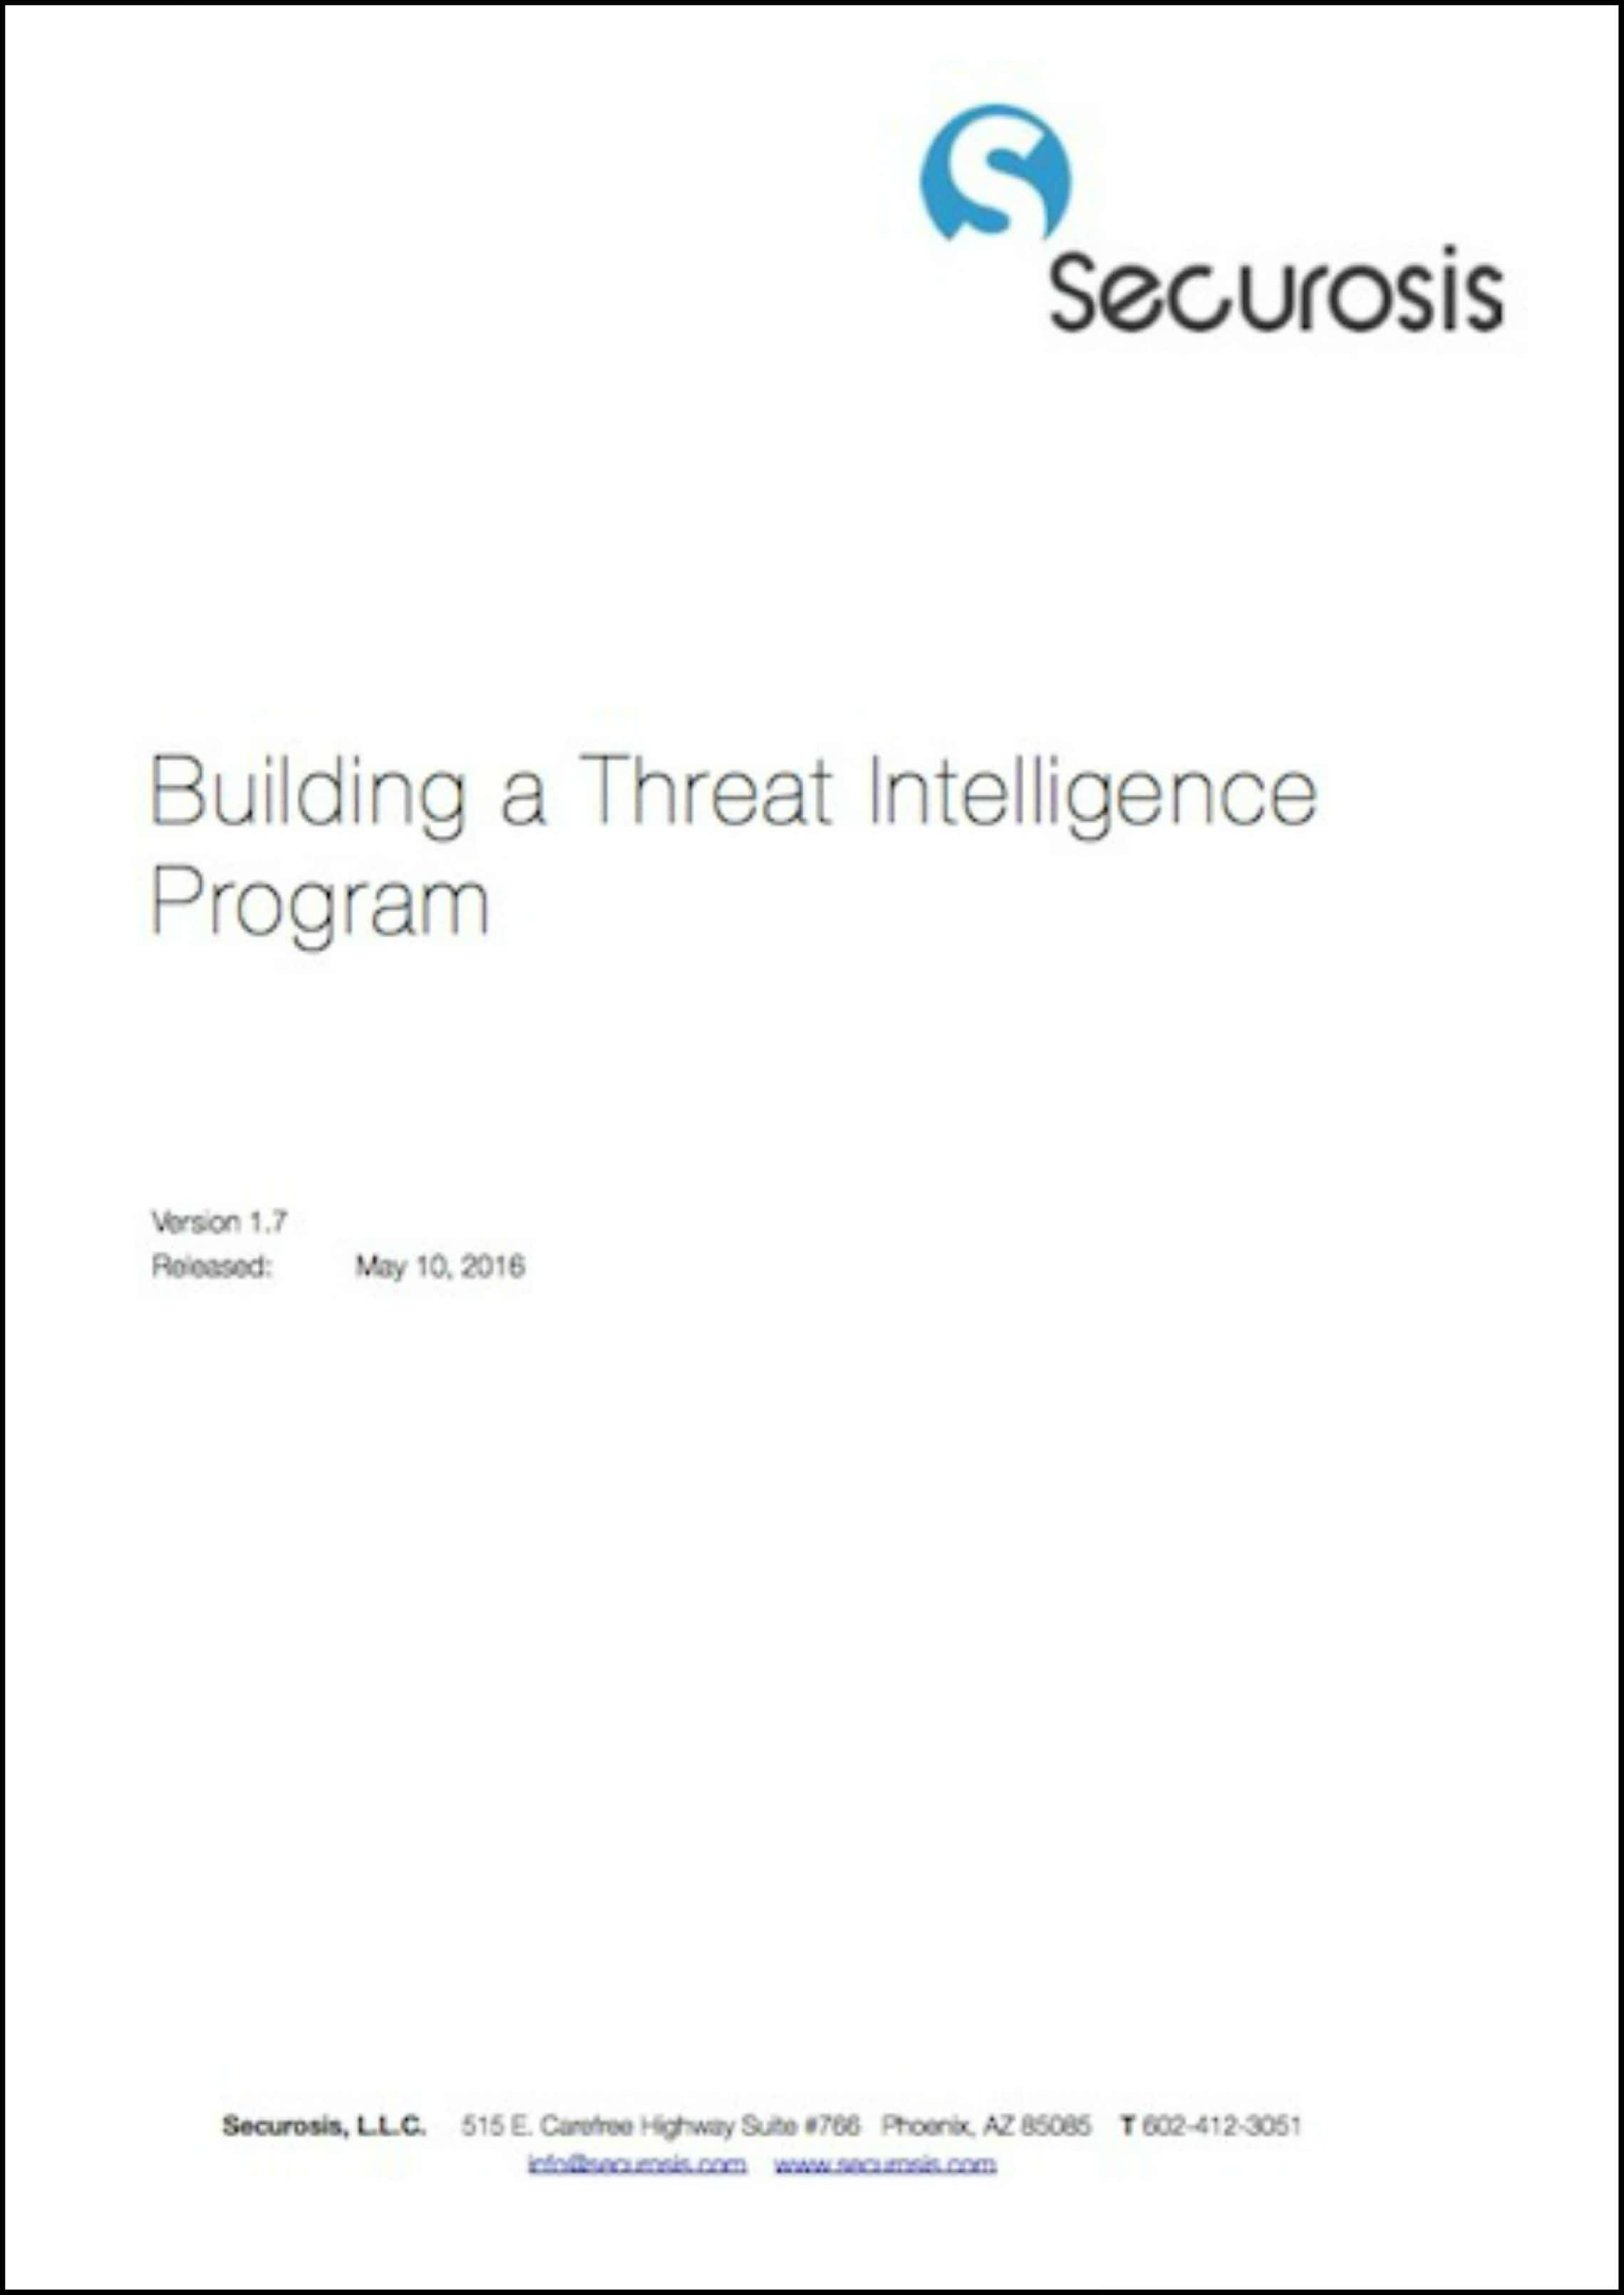 Securosis Building a Threat Intelligence Program min